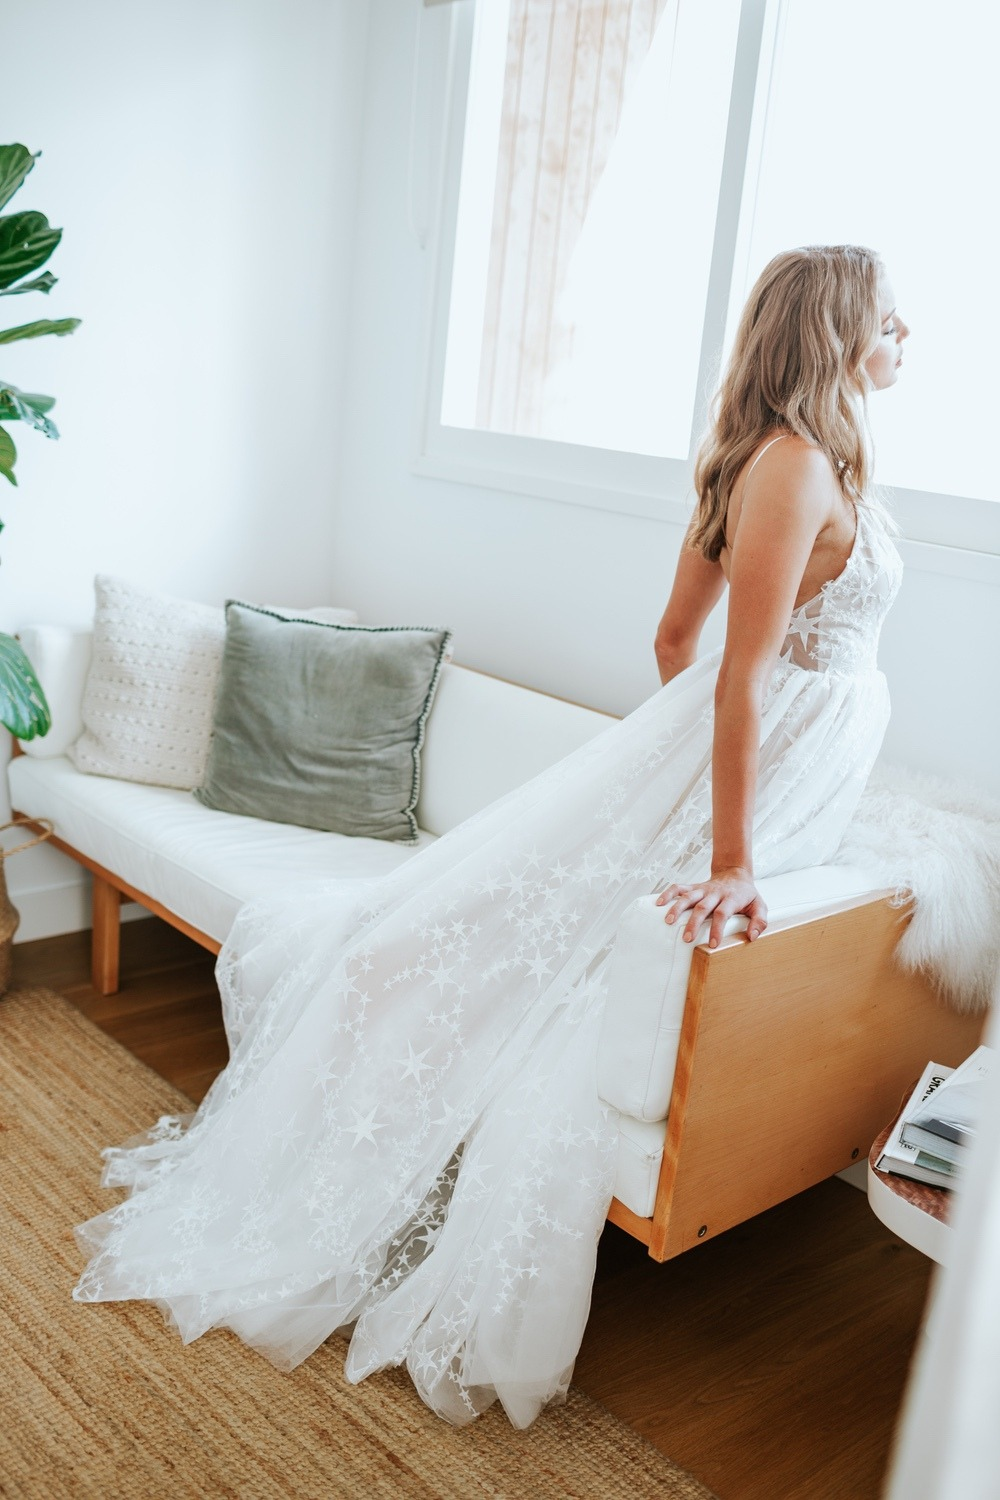 Star wedding dress from Luna Willow Bridal Dress Collection